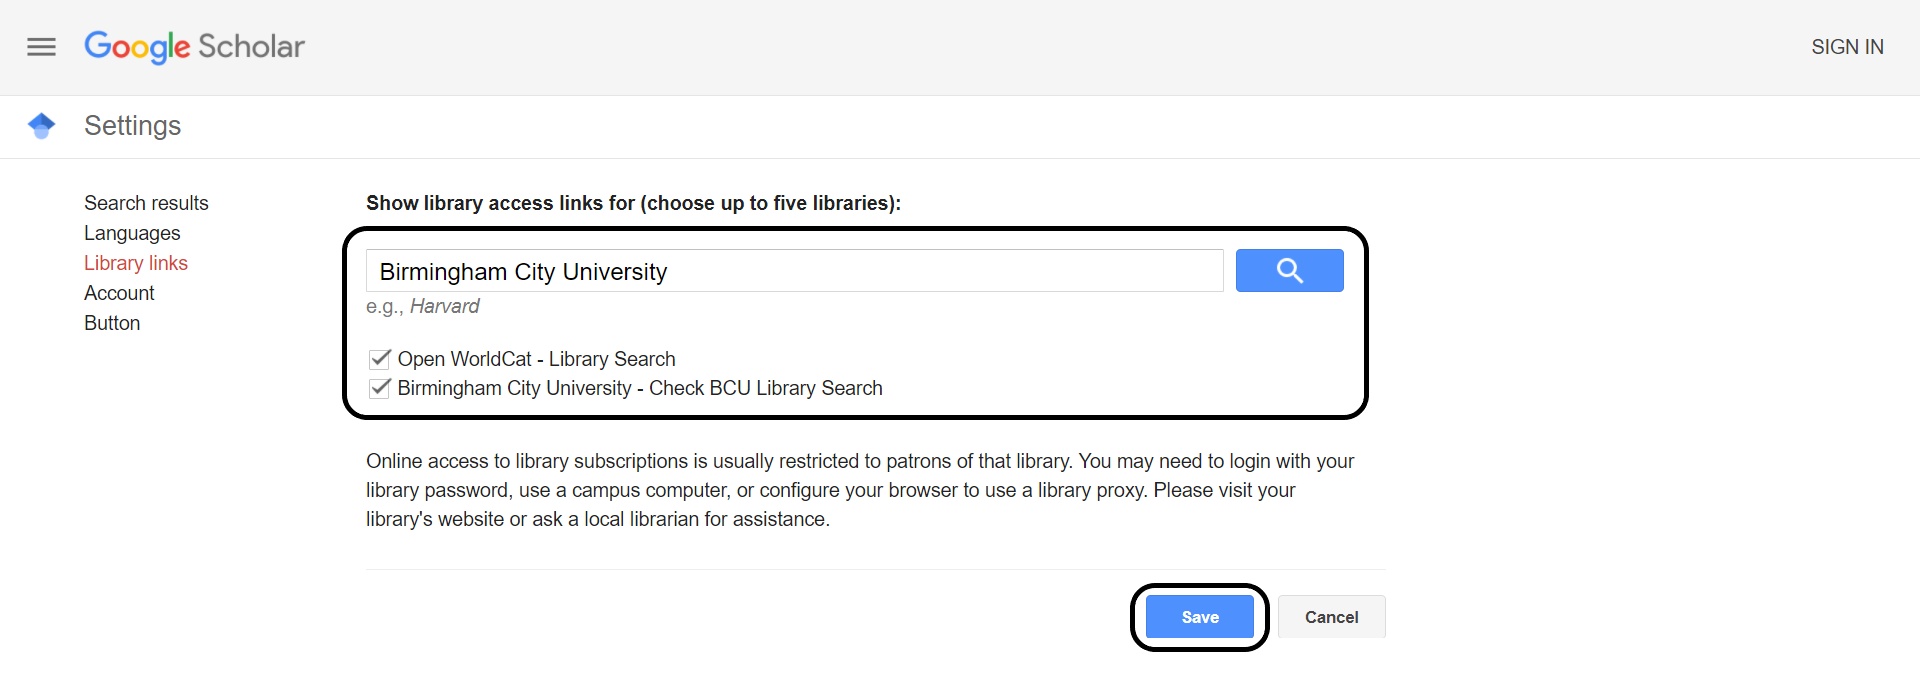 Checkbox for Birmingham City University's library link ticked and save button highlighted